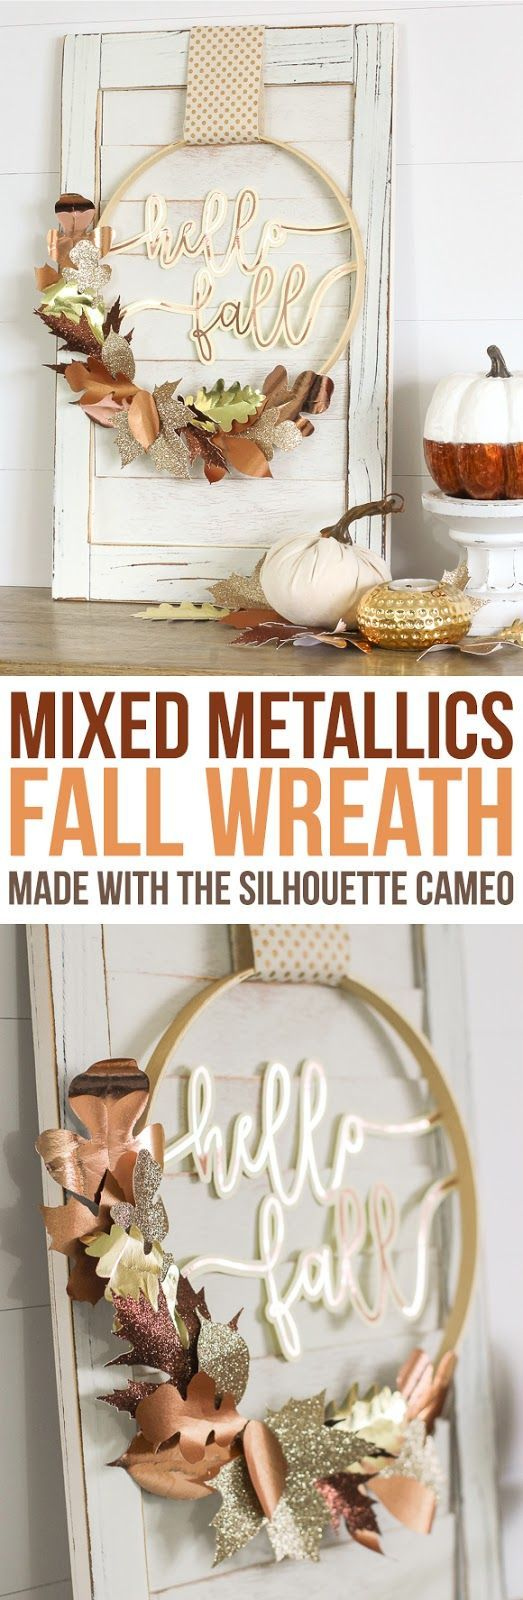 Create a beautiful mixed metallic fall wreath from scrapbook paper and rose gold vinyl cut with a Silhouette Cameo machine. #fallcrafts